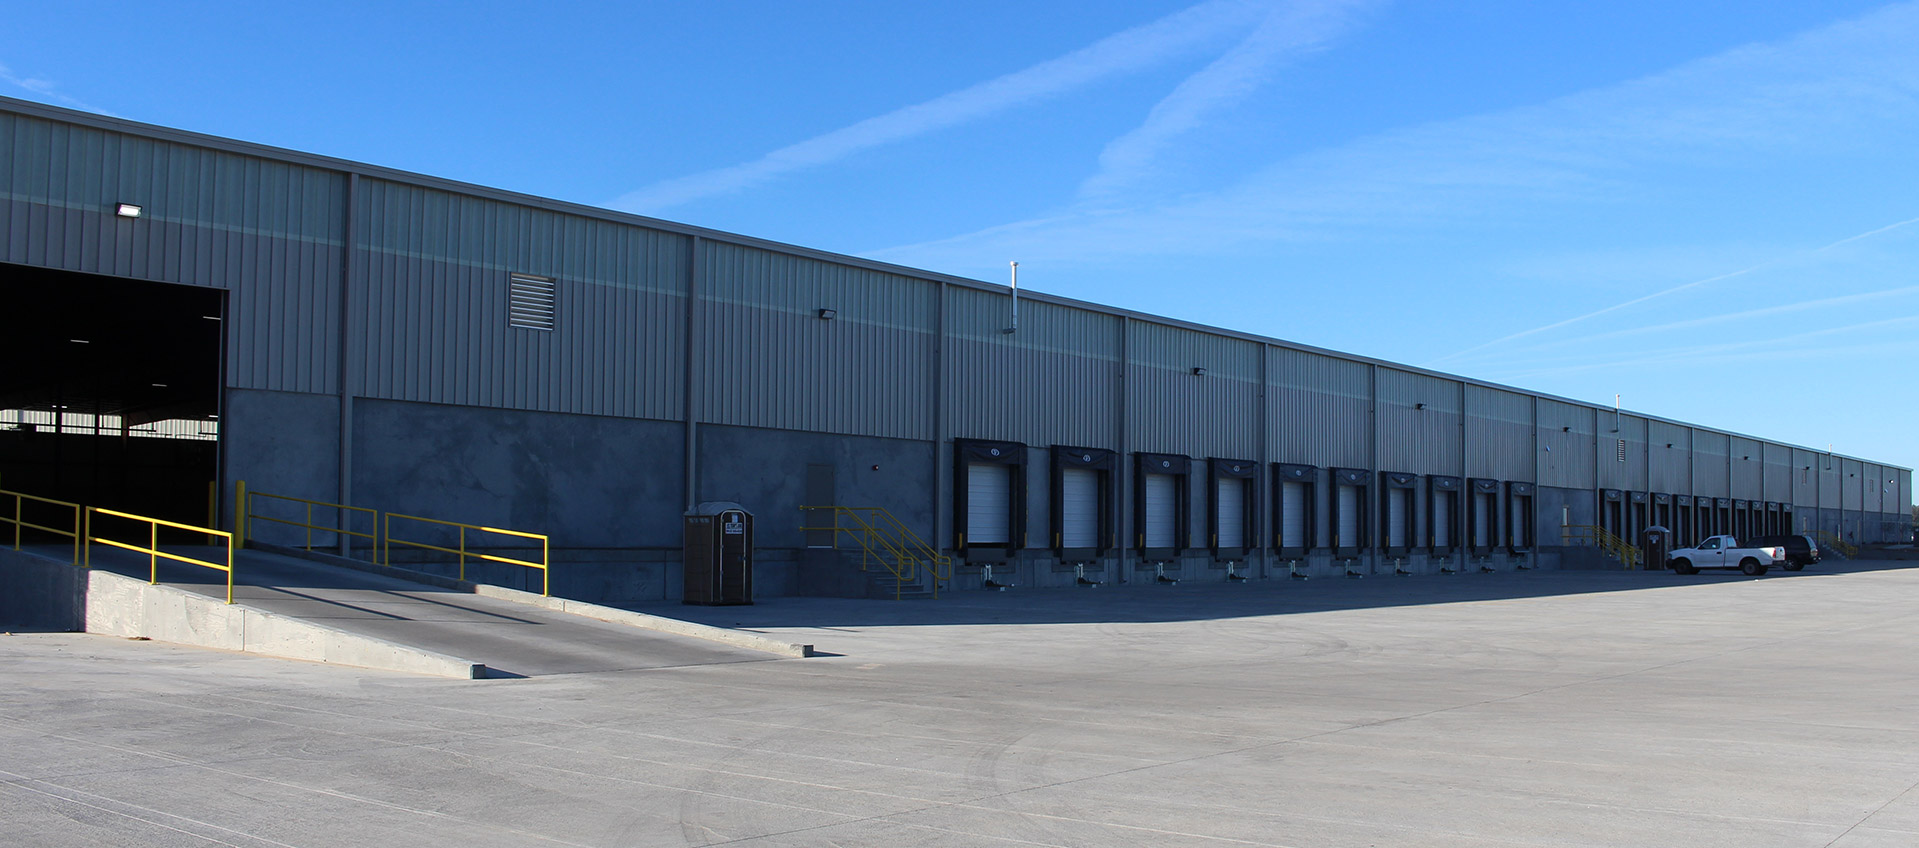 WDS completes relocation into larger warehousing & distribution